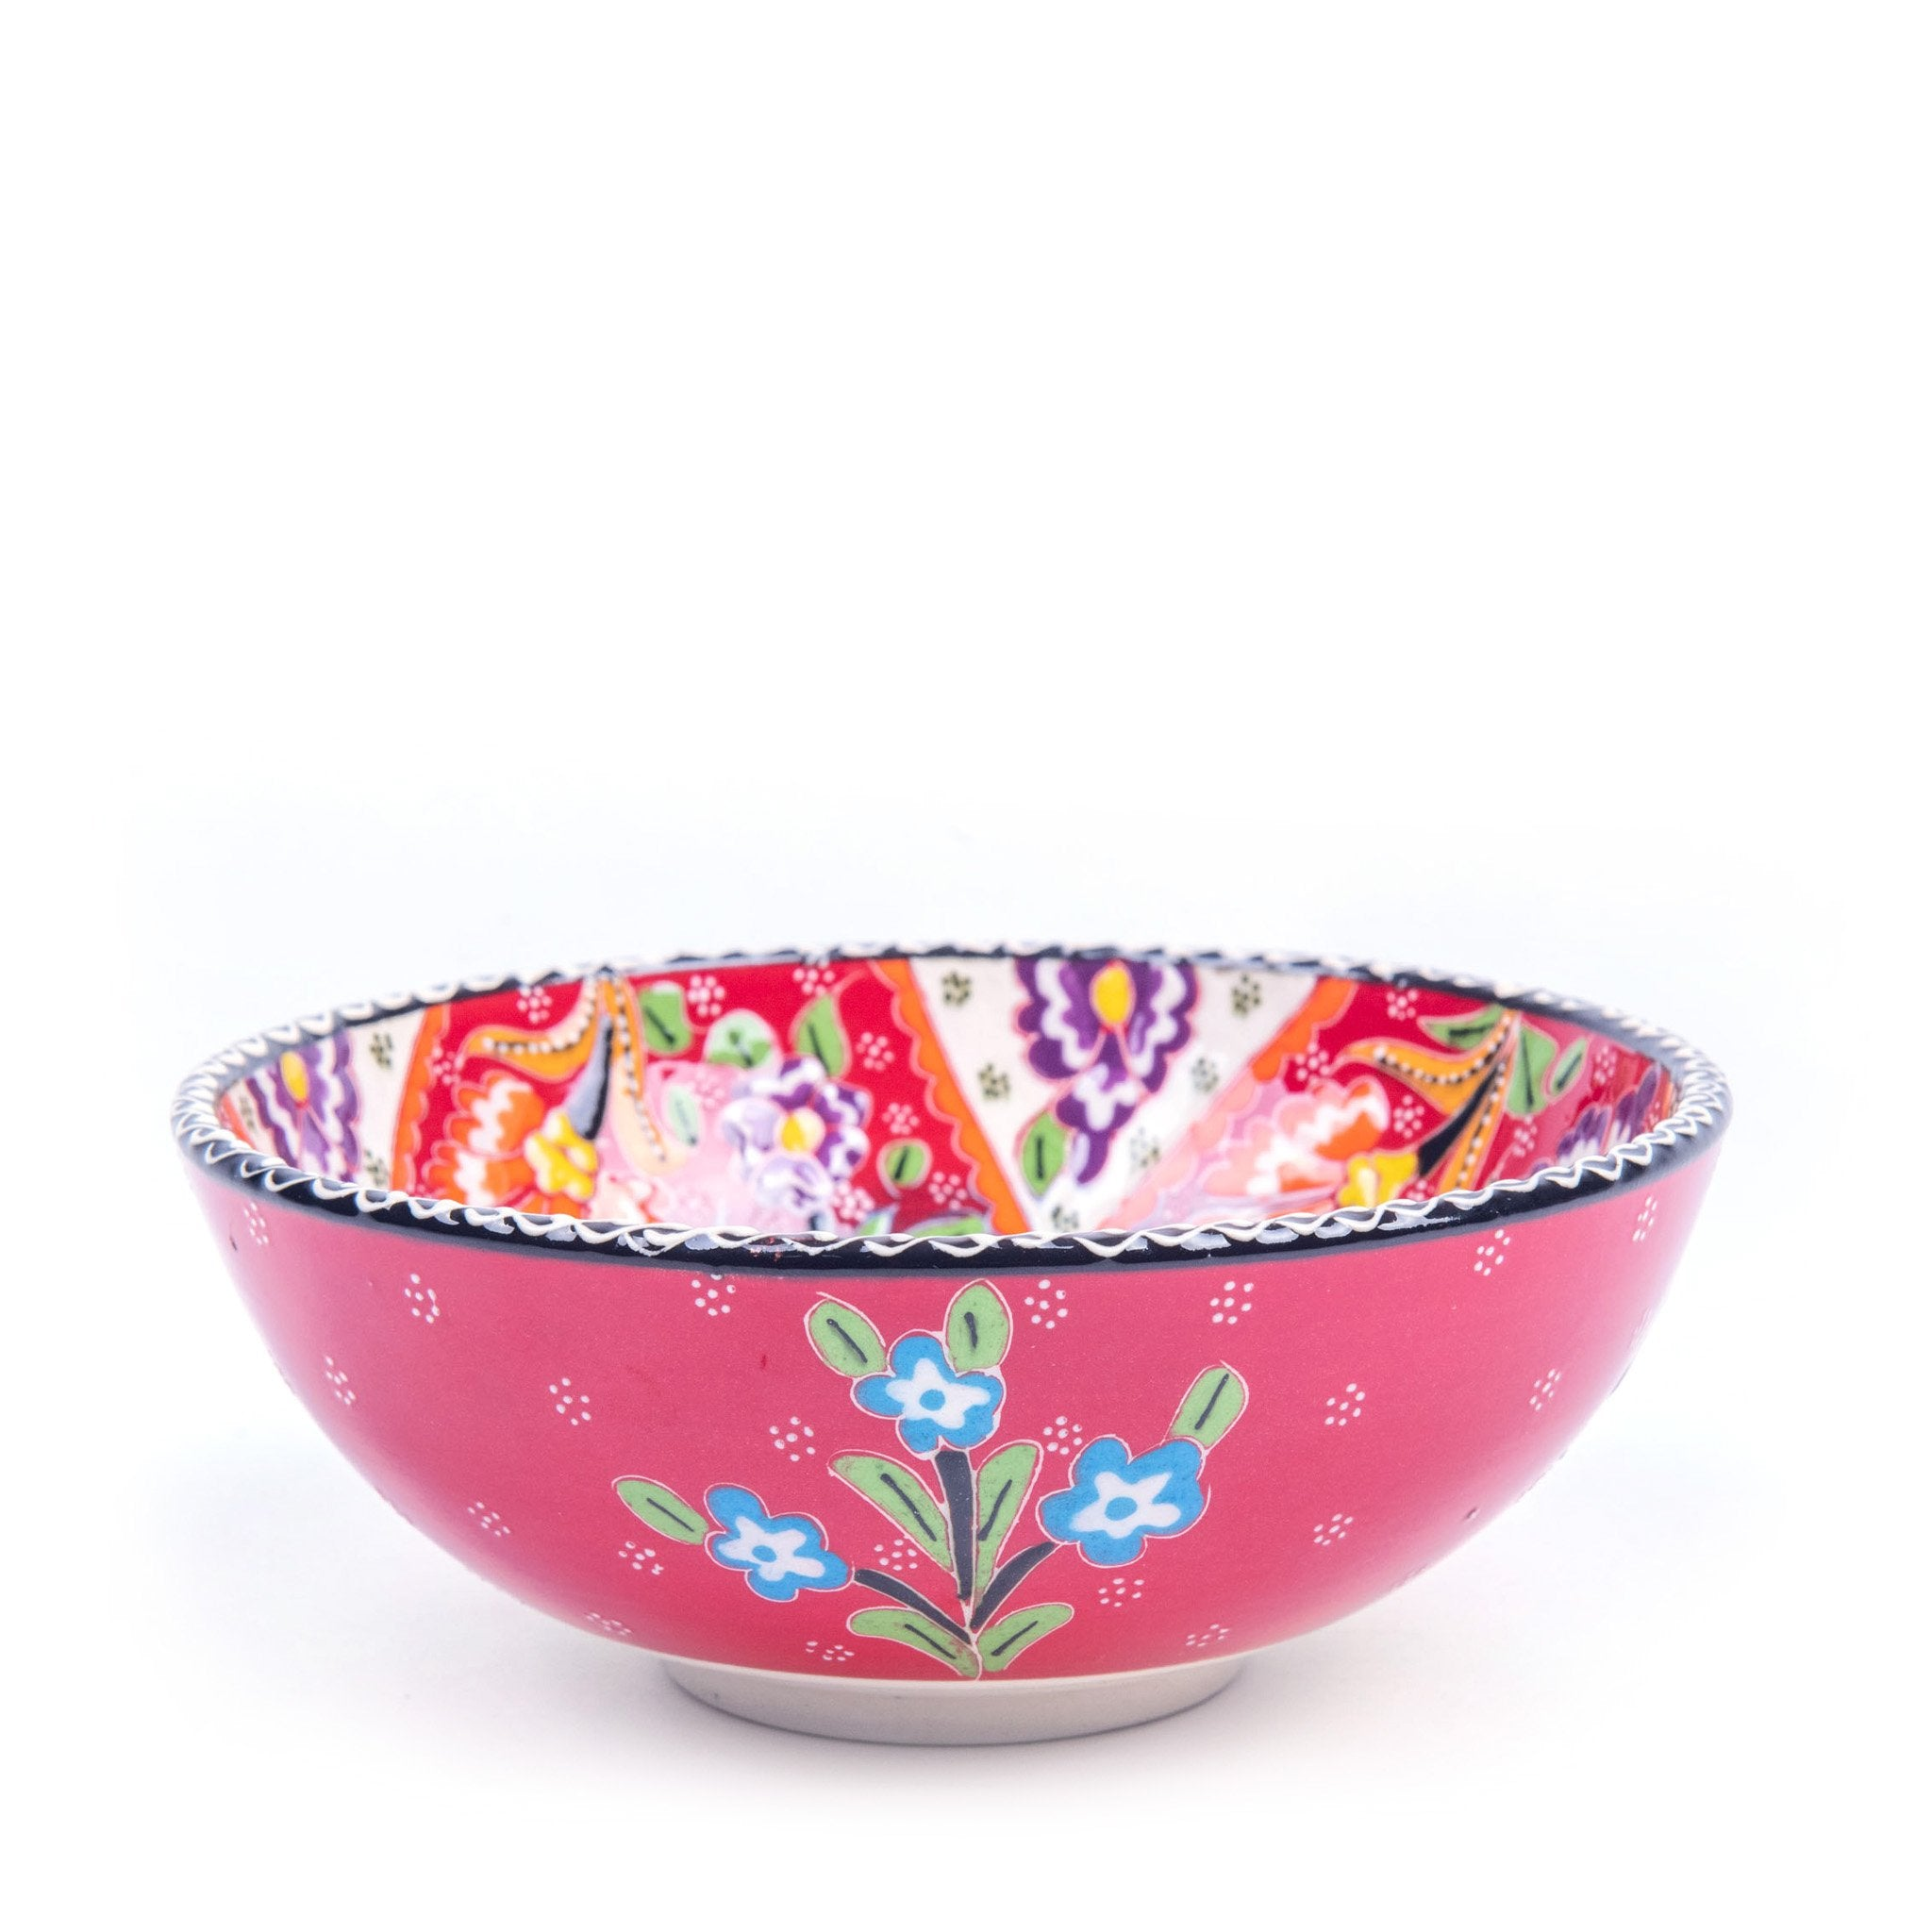 Turkish Ceramic Kutahya Design Handmade Flat Bowl - 15 cm (6'')